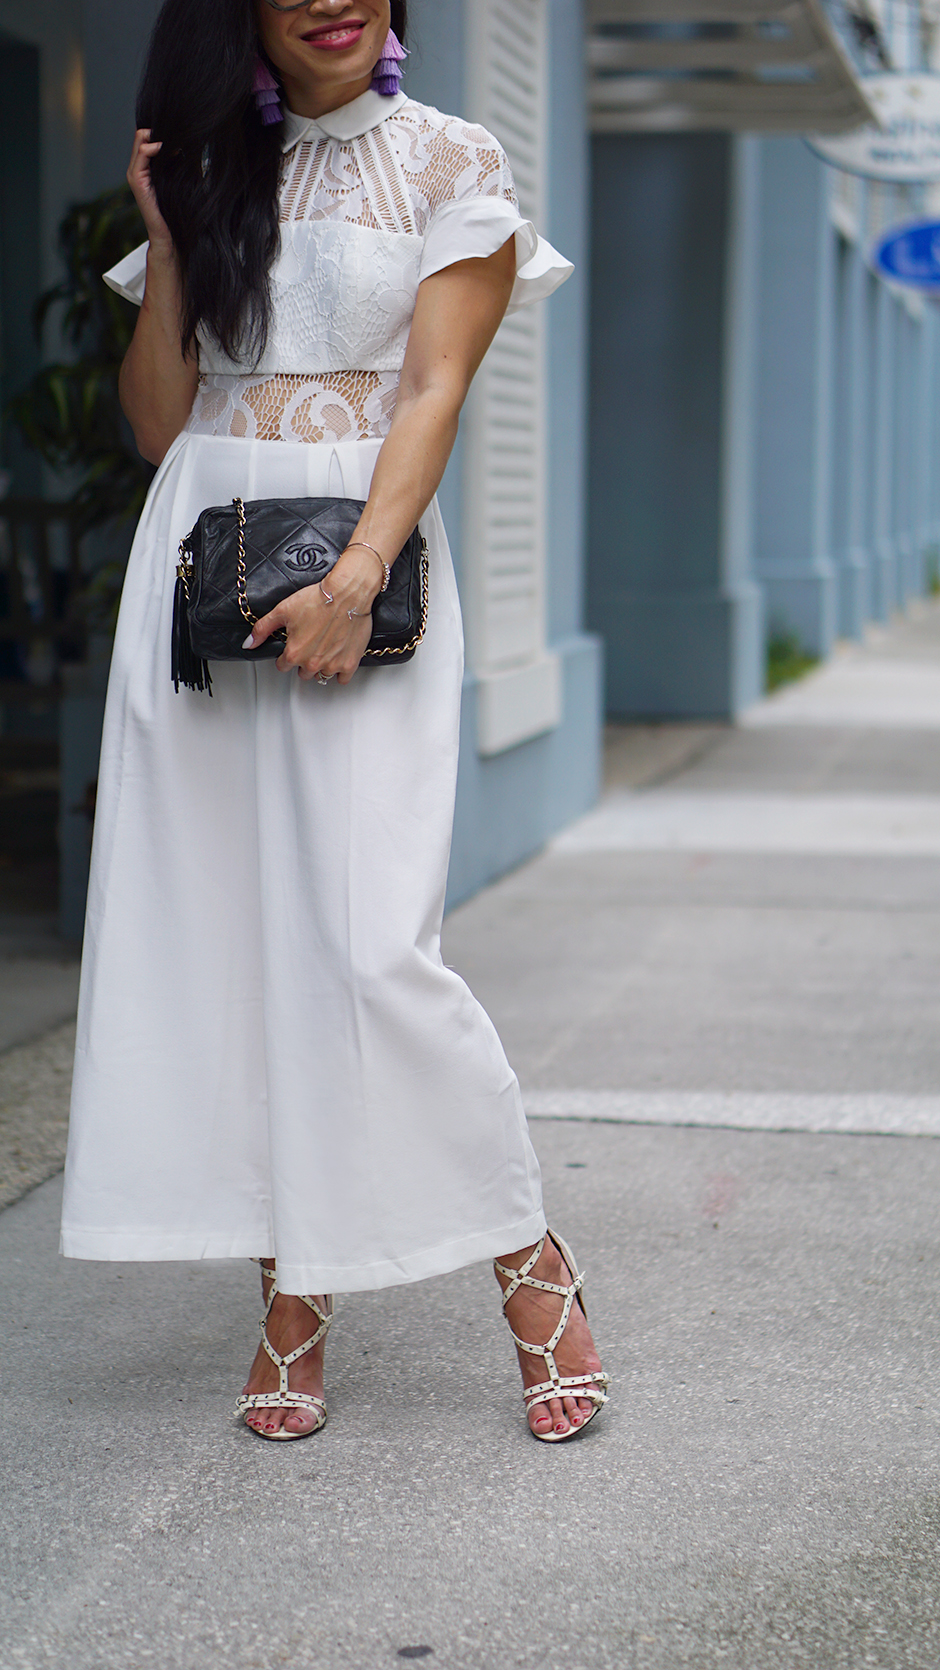 Stylish Classic Pieces You Should Inveswt In #fashionblog #styleblog #streetstyleblog #streetstyle #classic #outfit #outfitinspo #ootd #whitejumpsuit #whiteoutfit #chanel #valentino #gucci #styledetails